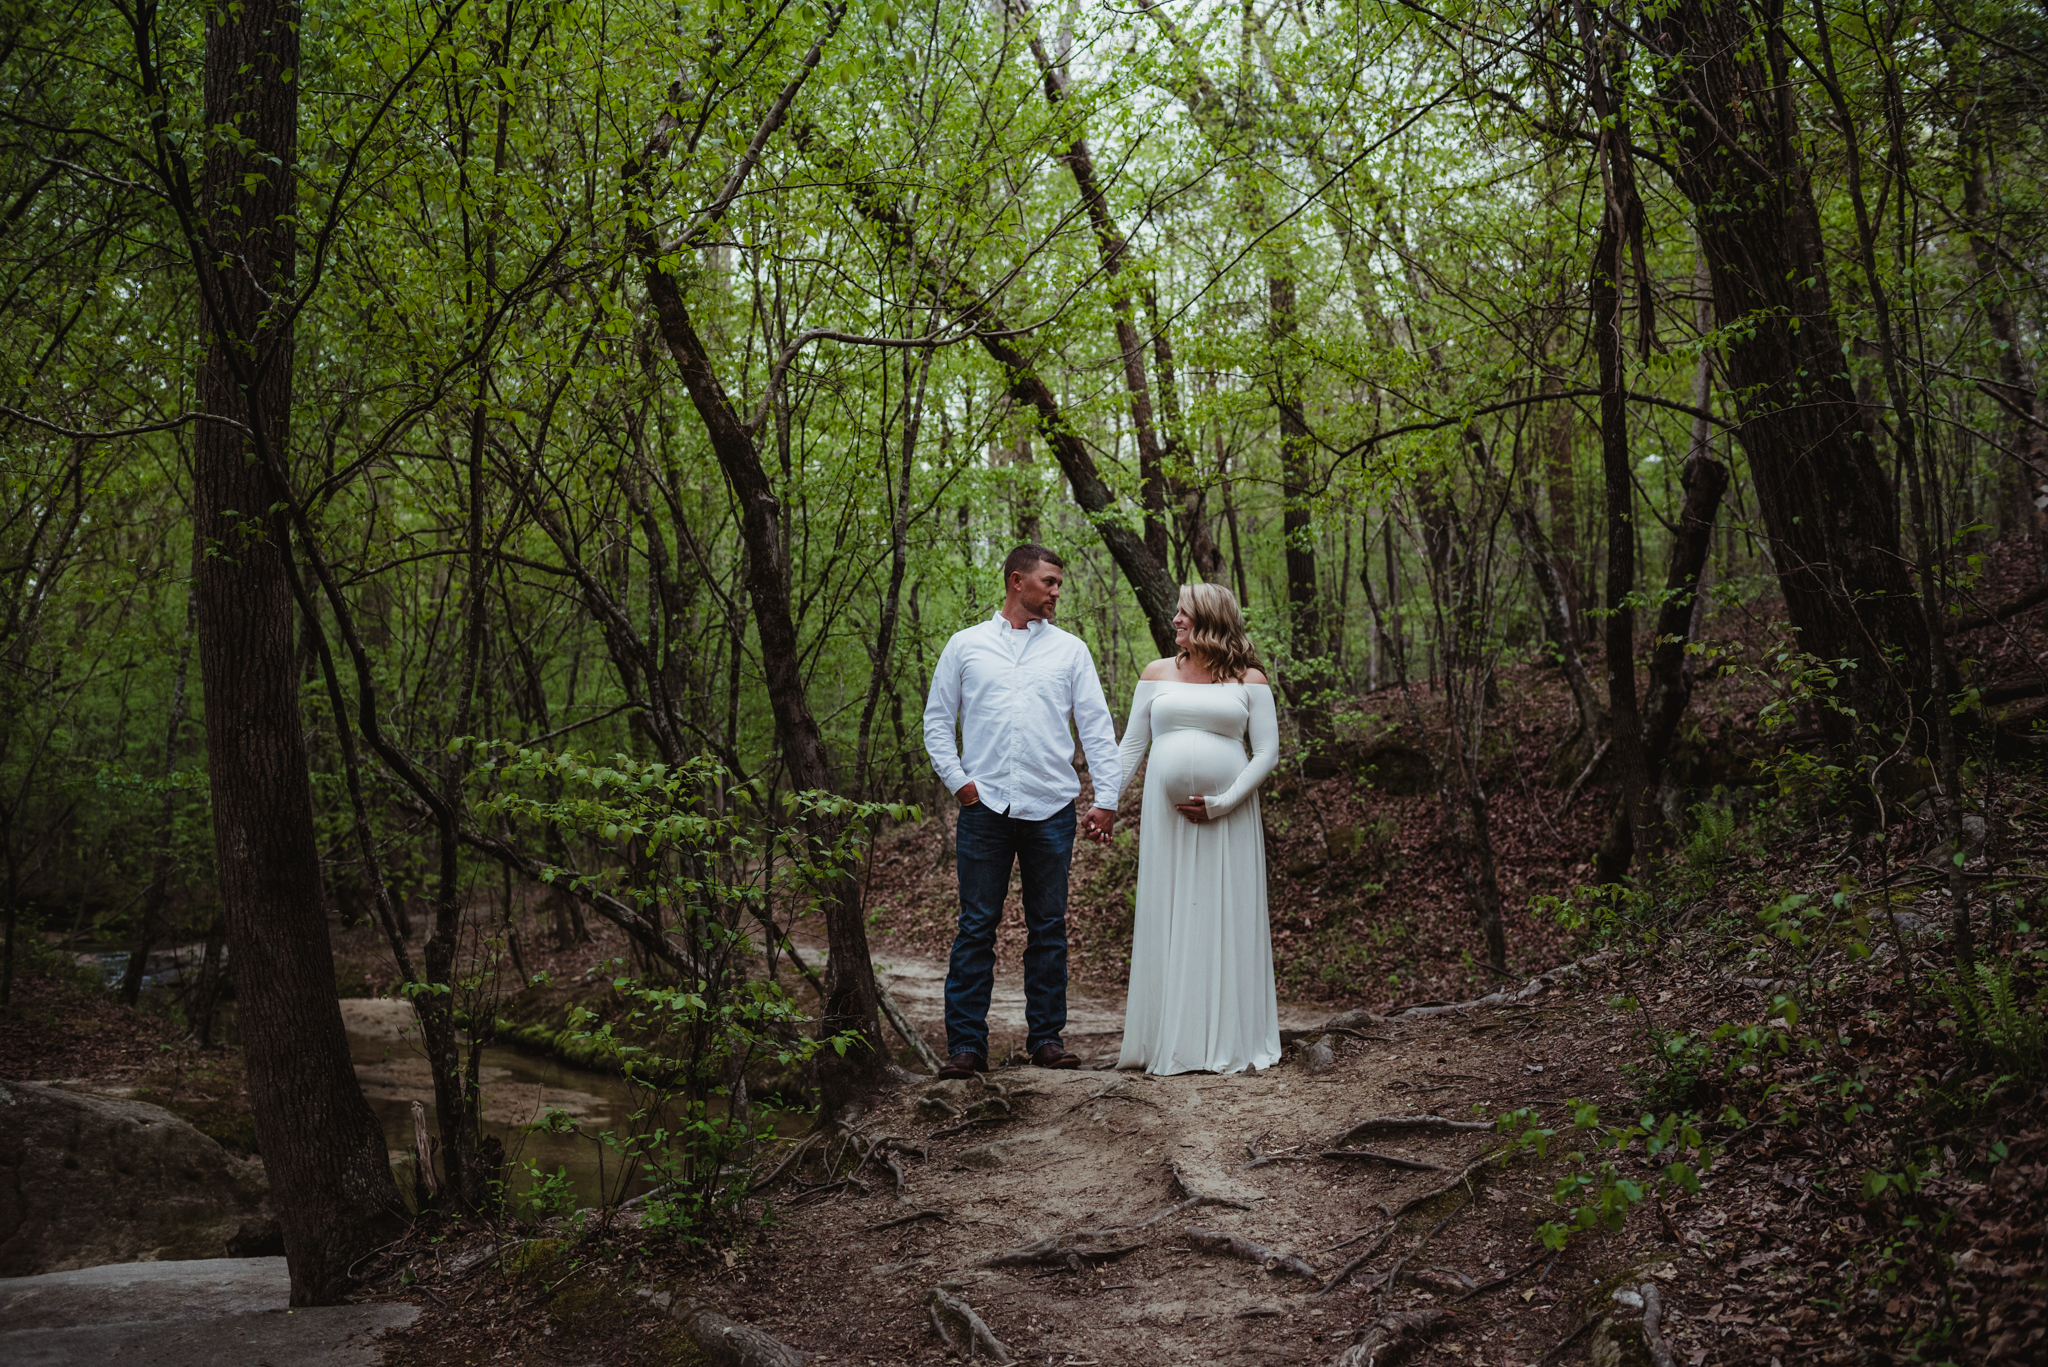 The soon to be parents stand side by side on the wooded trail during their maternity shoot with Rose Trail Images at Mill Bridge Nature Park in Rolesville, NC.